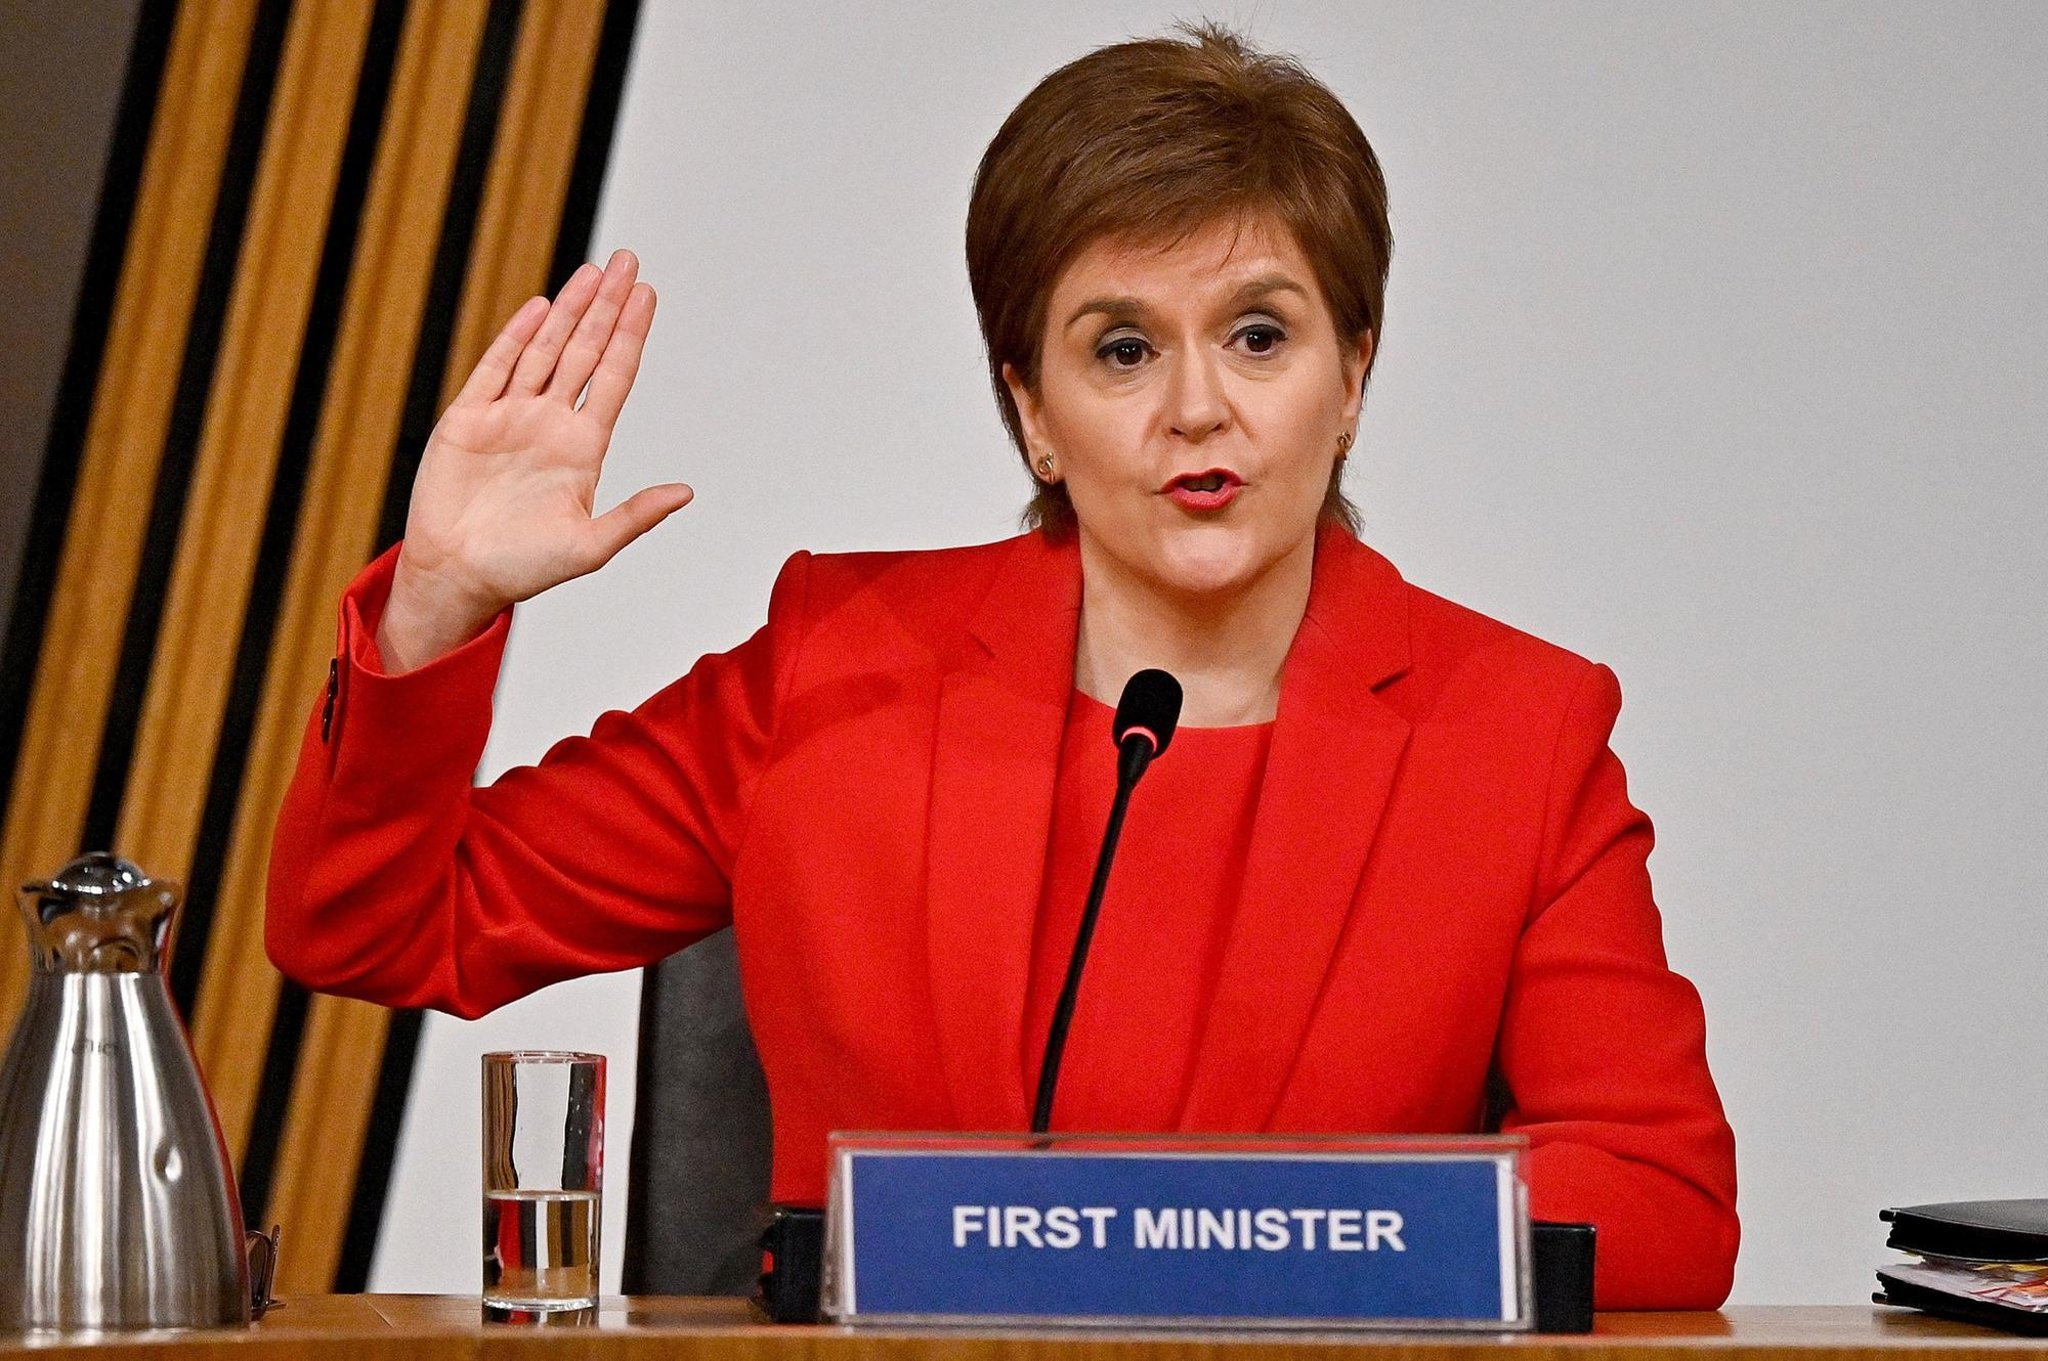 Alex Salmond inquiry: Nicola Sturgeon apologises and recalls 'the moment I'll never forget'